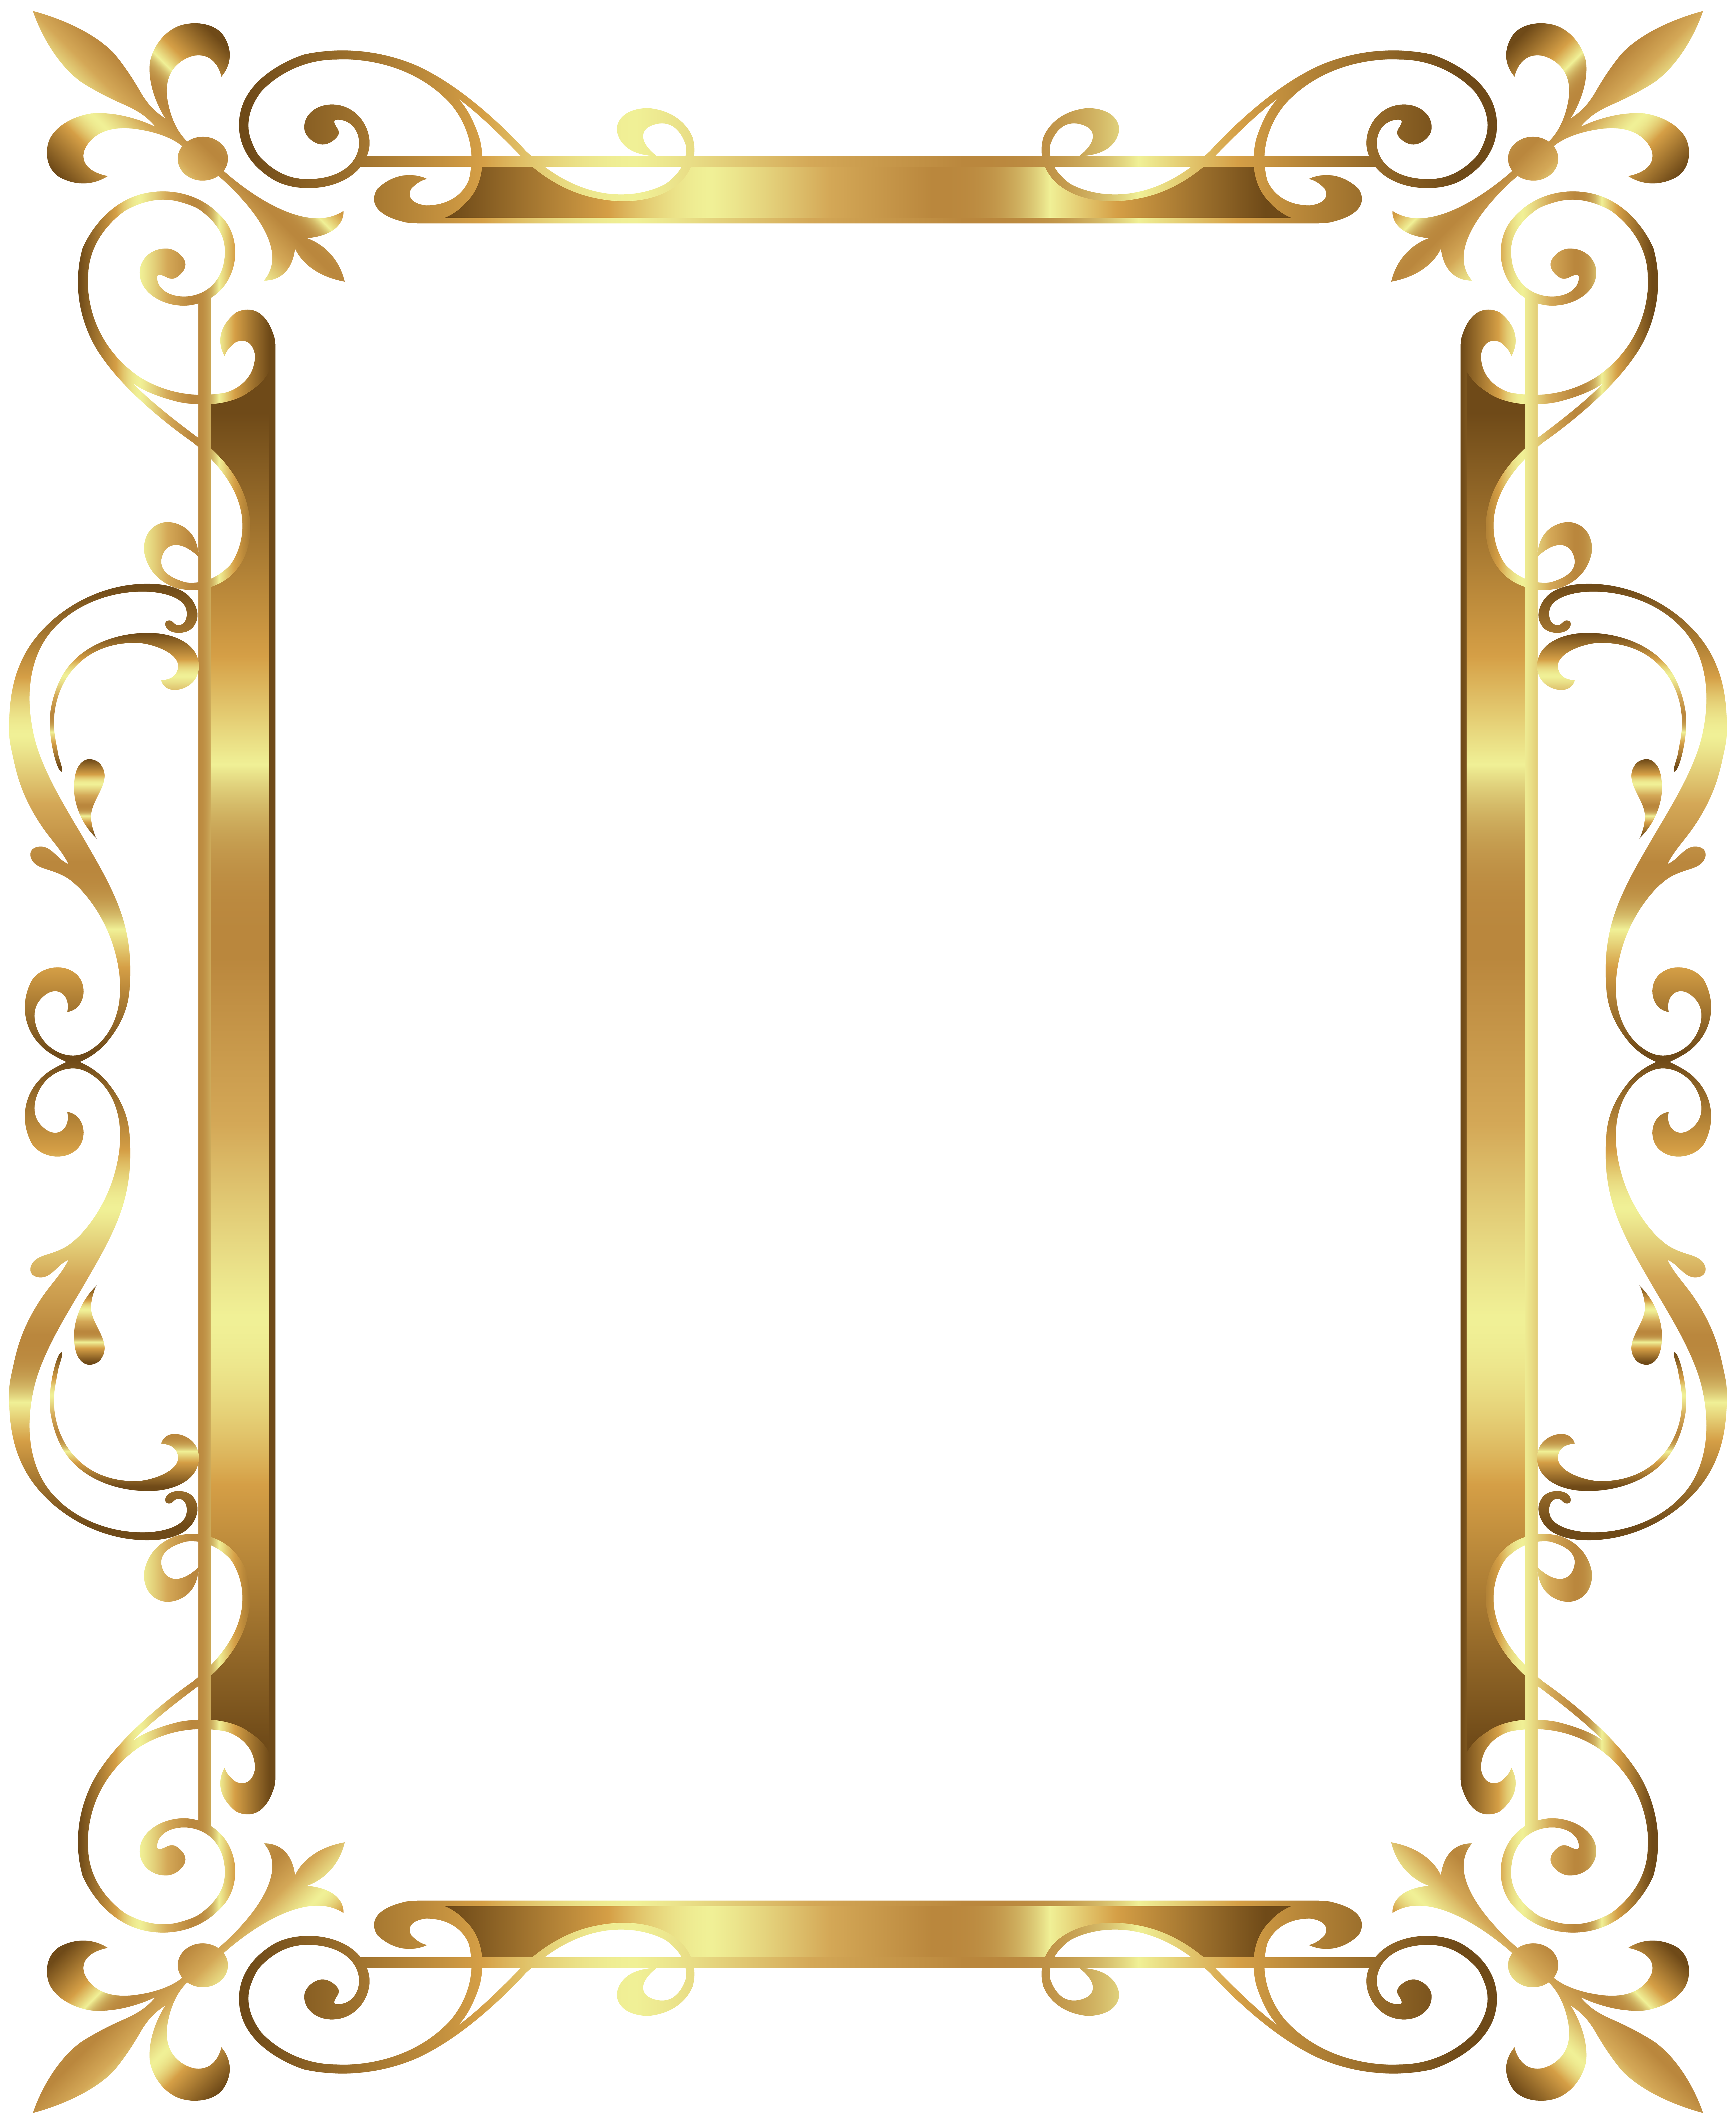 Border Frame Clipart Photo